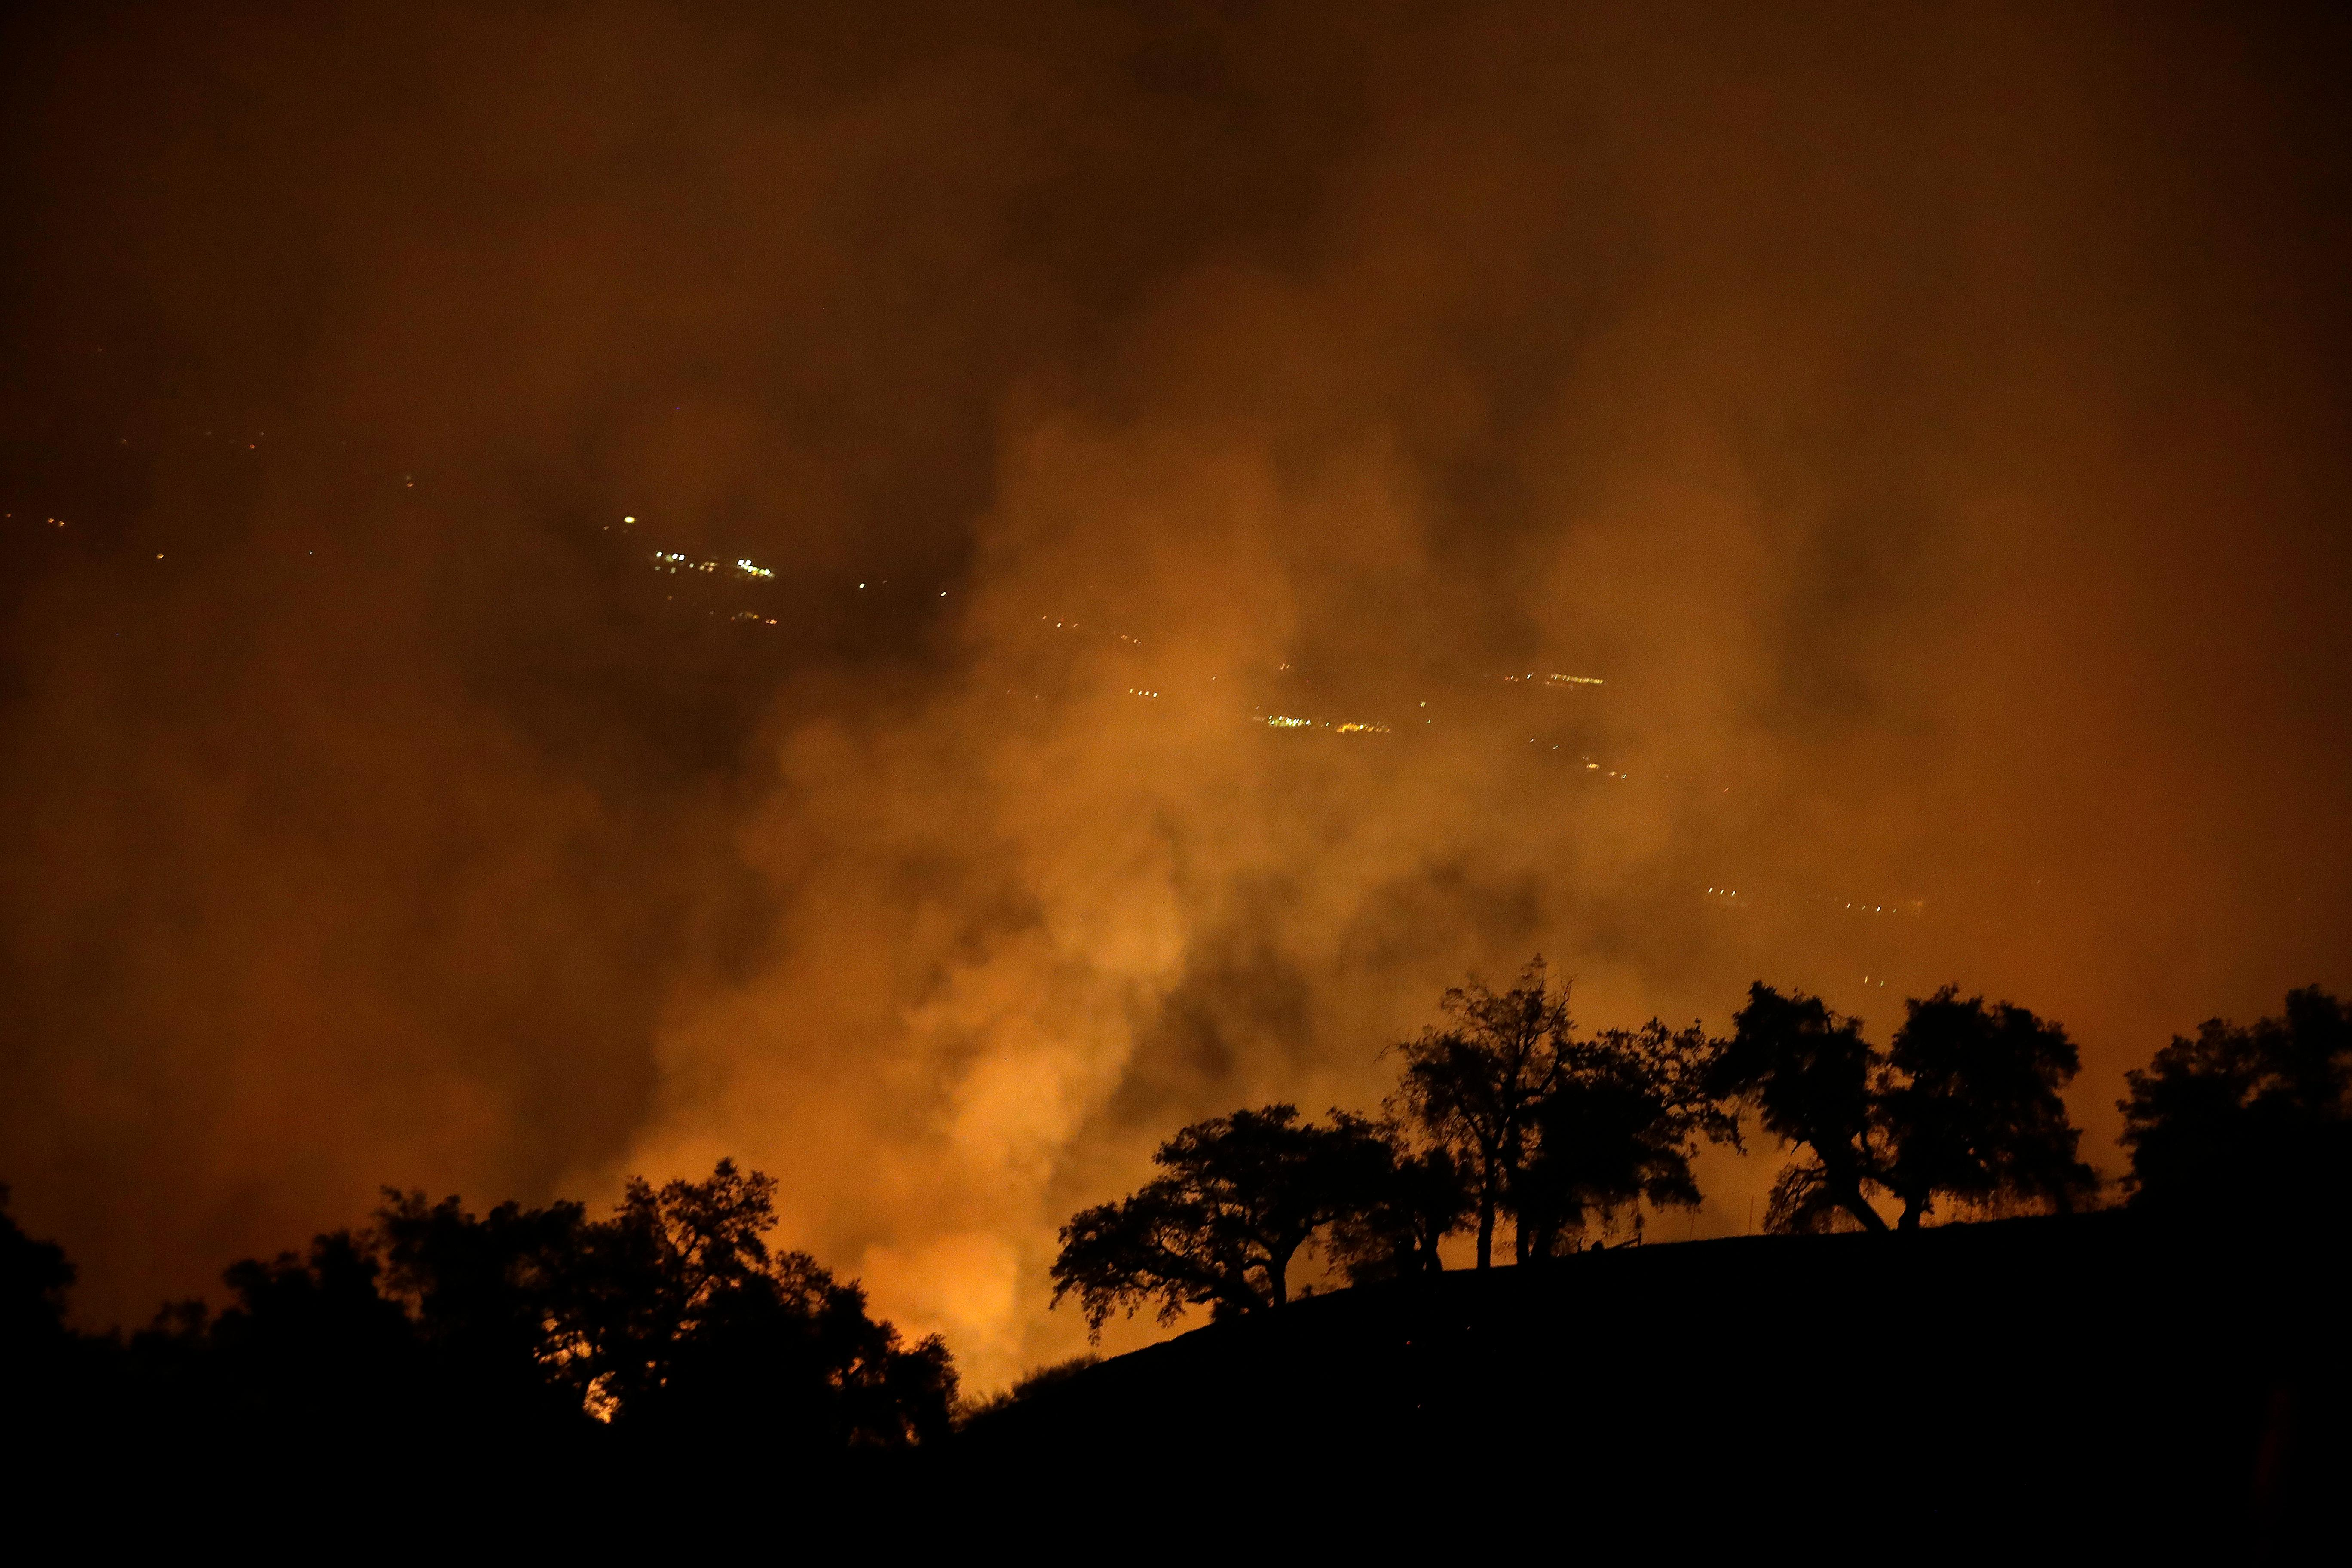 A wildfires creates an orange glow in a view from a hilltop Friday, Oct. 13, 2017, in Geyserville, Calif. (AP Photo/Marcio Jose Sanchez)